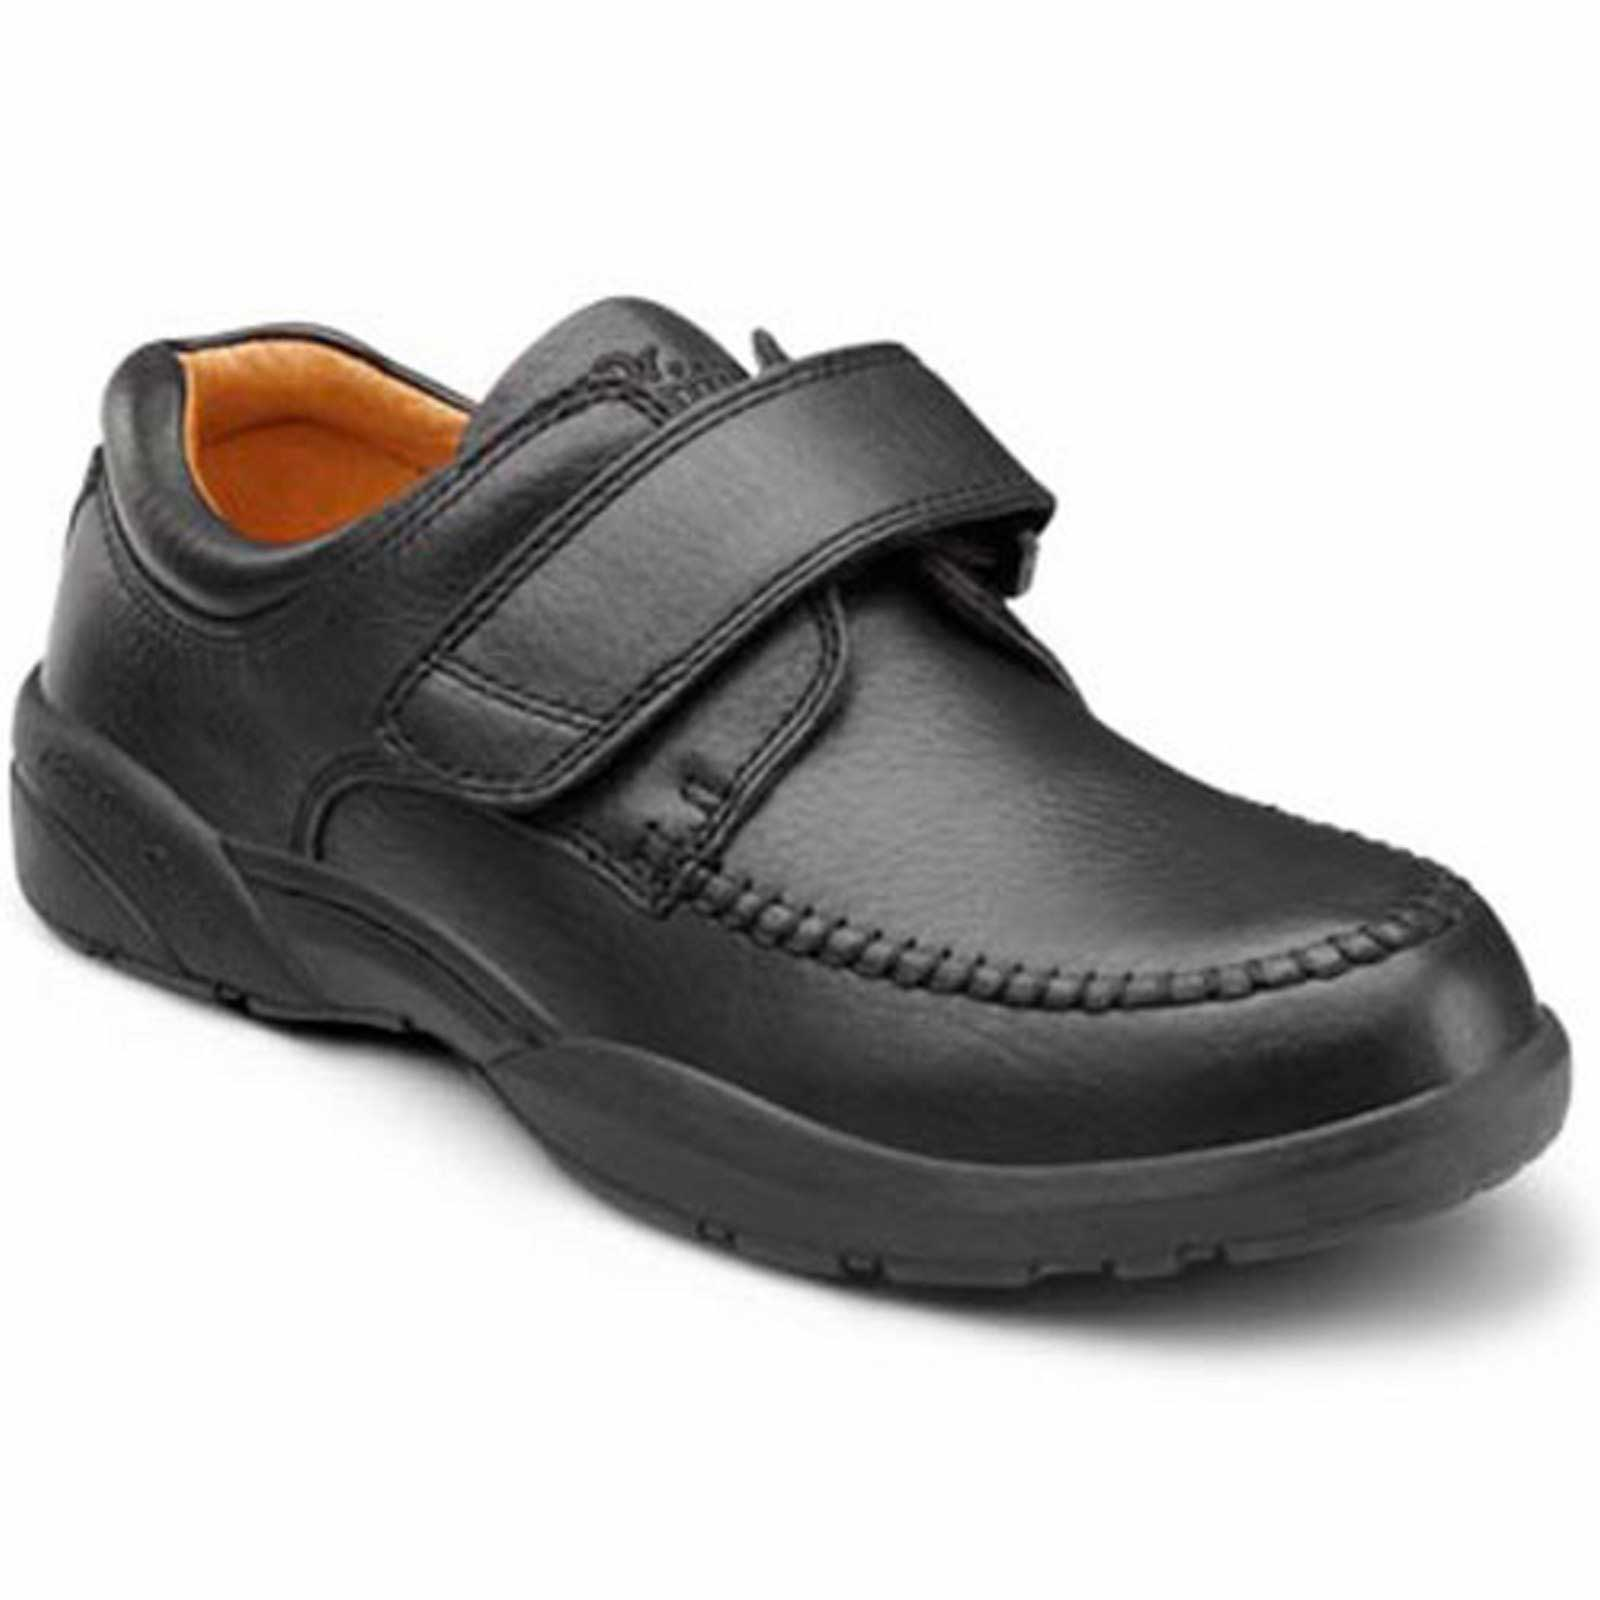 dr drcomfort comforter shoes comfort diabetic